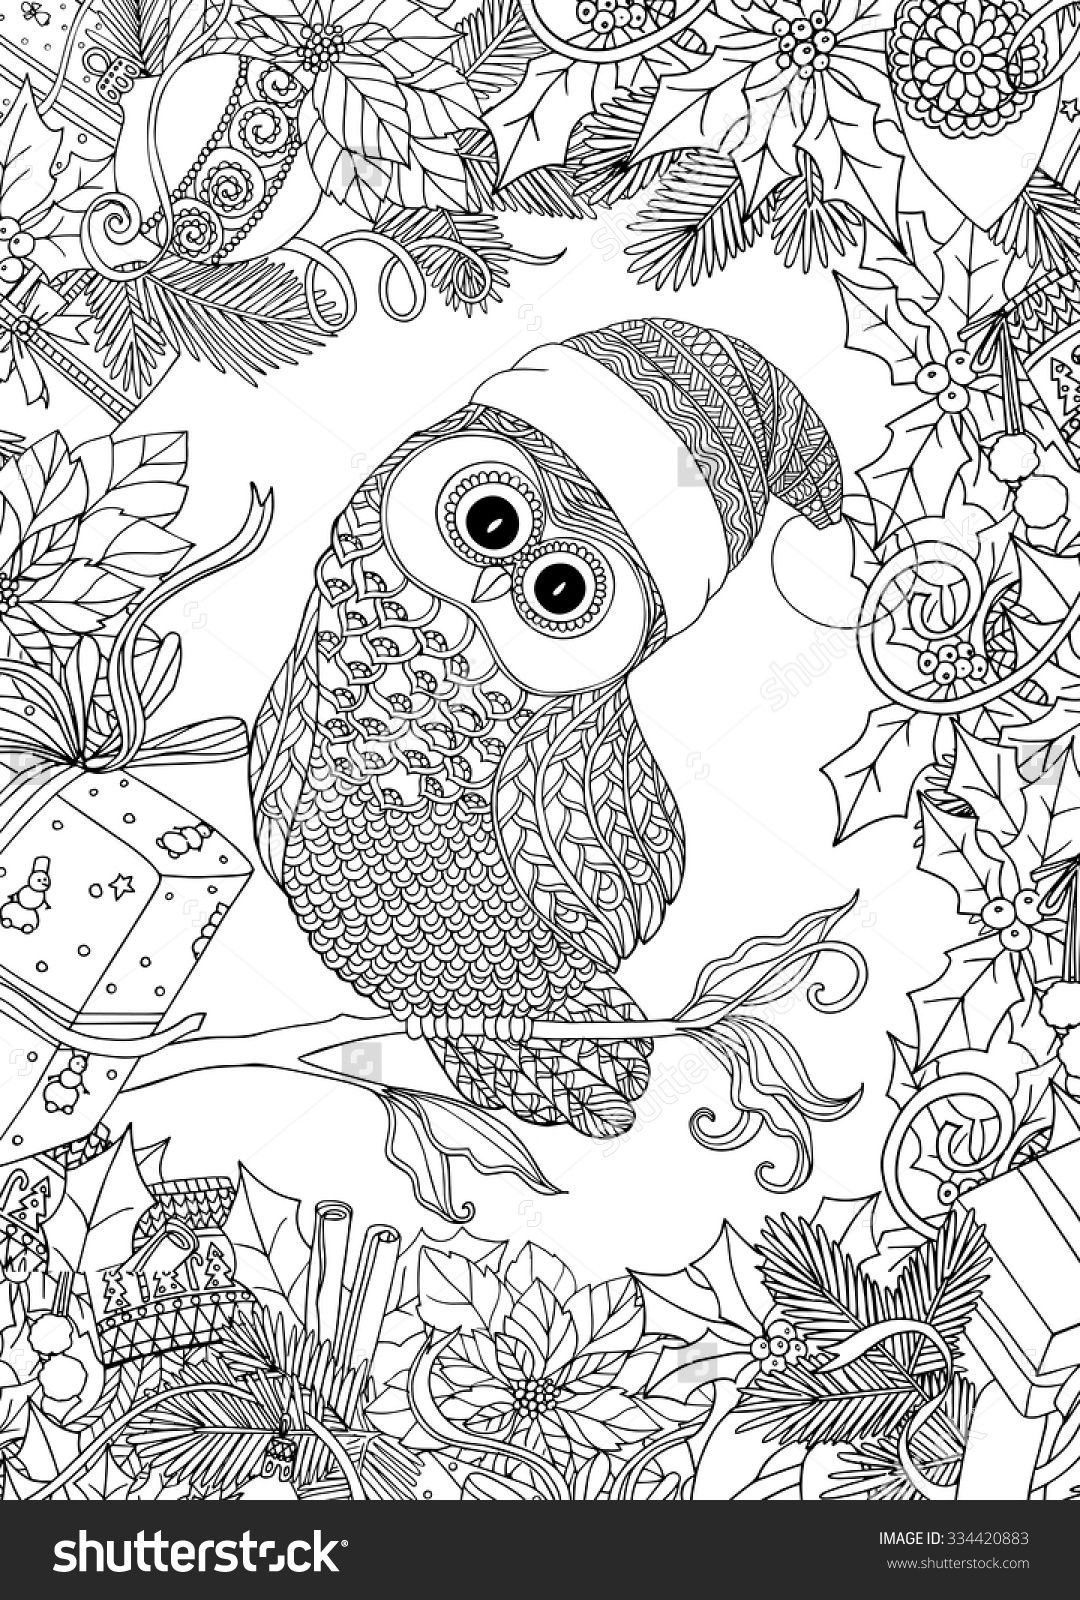 Christmas Colouring Pages Mindfulness With Adult Coloring Google Search And Teen